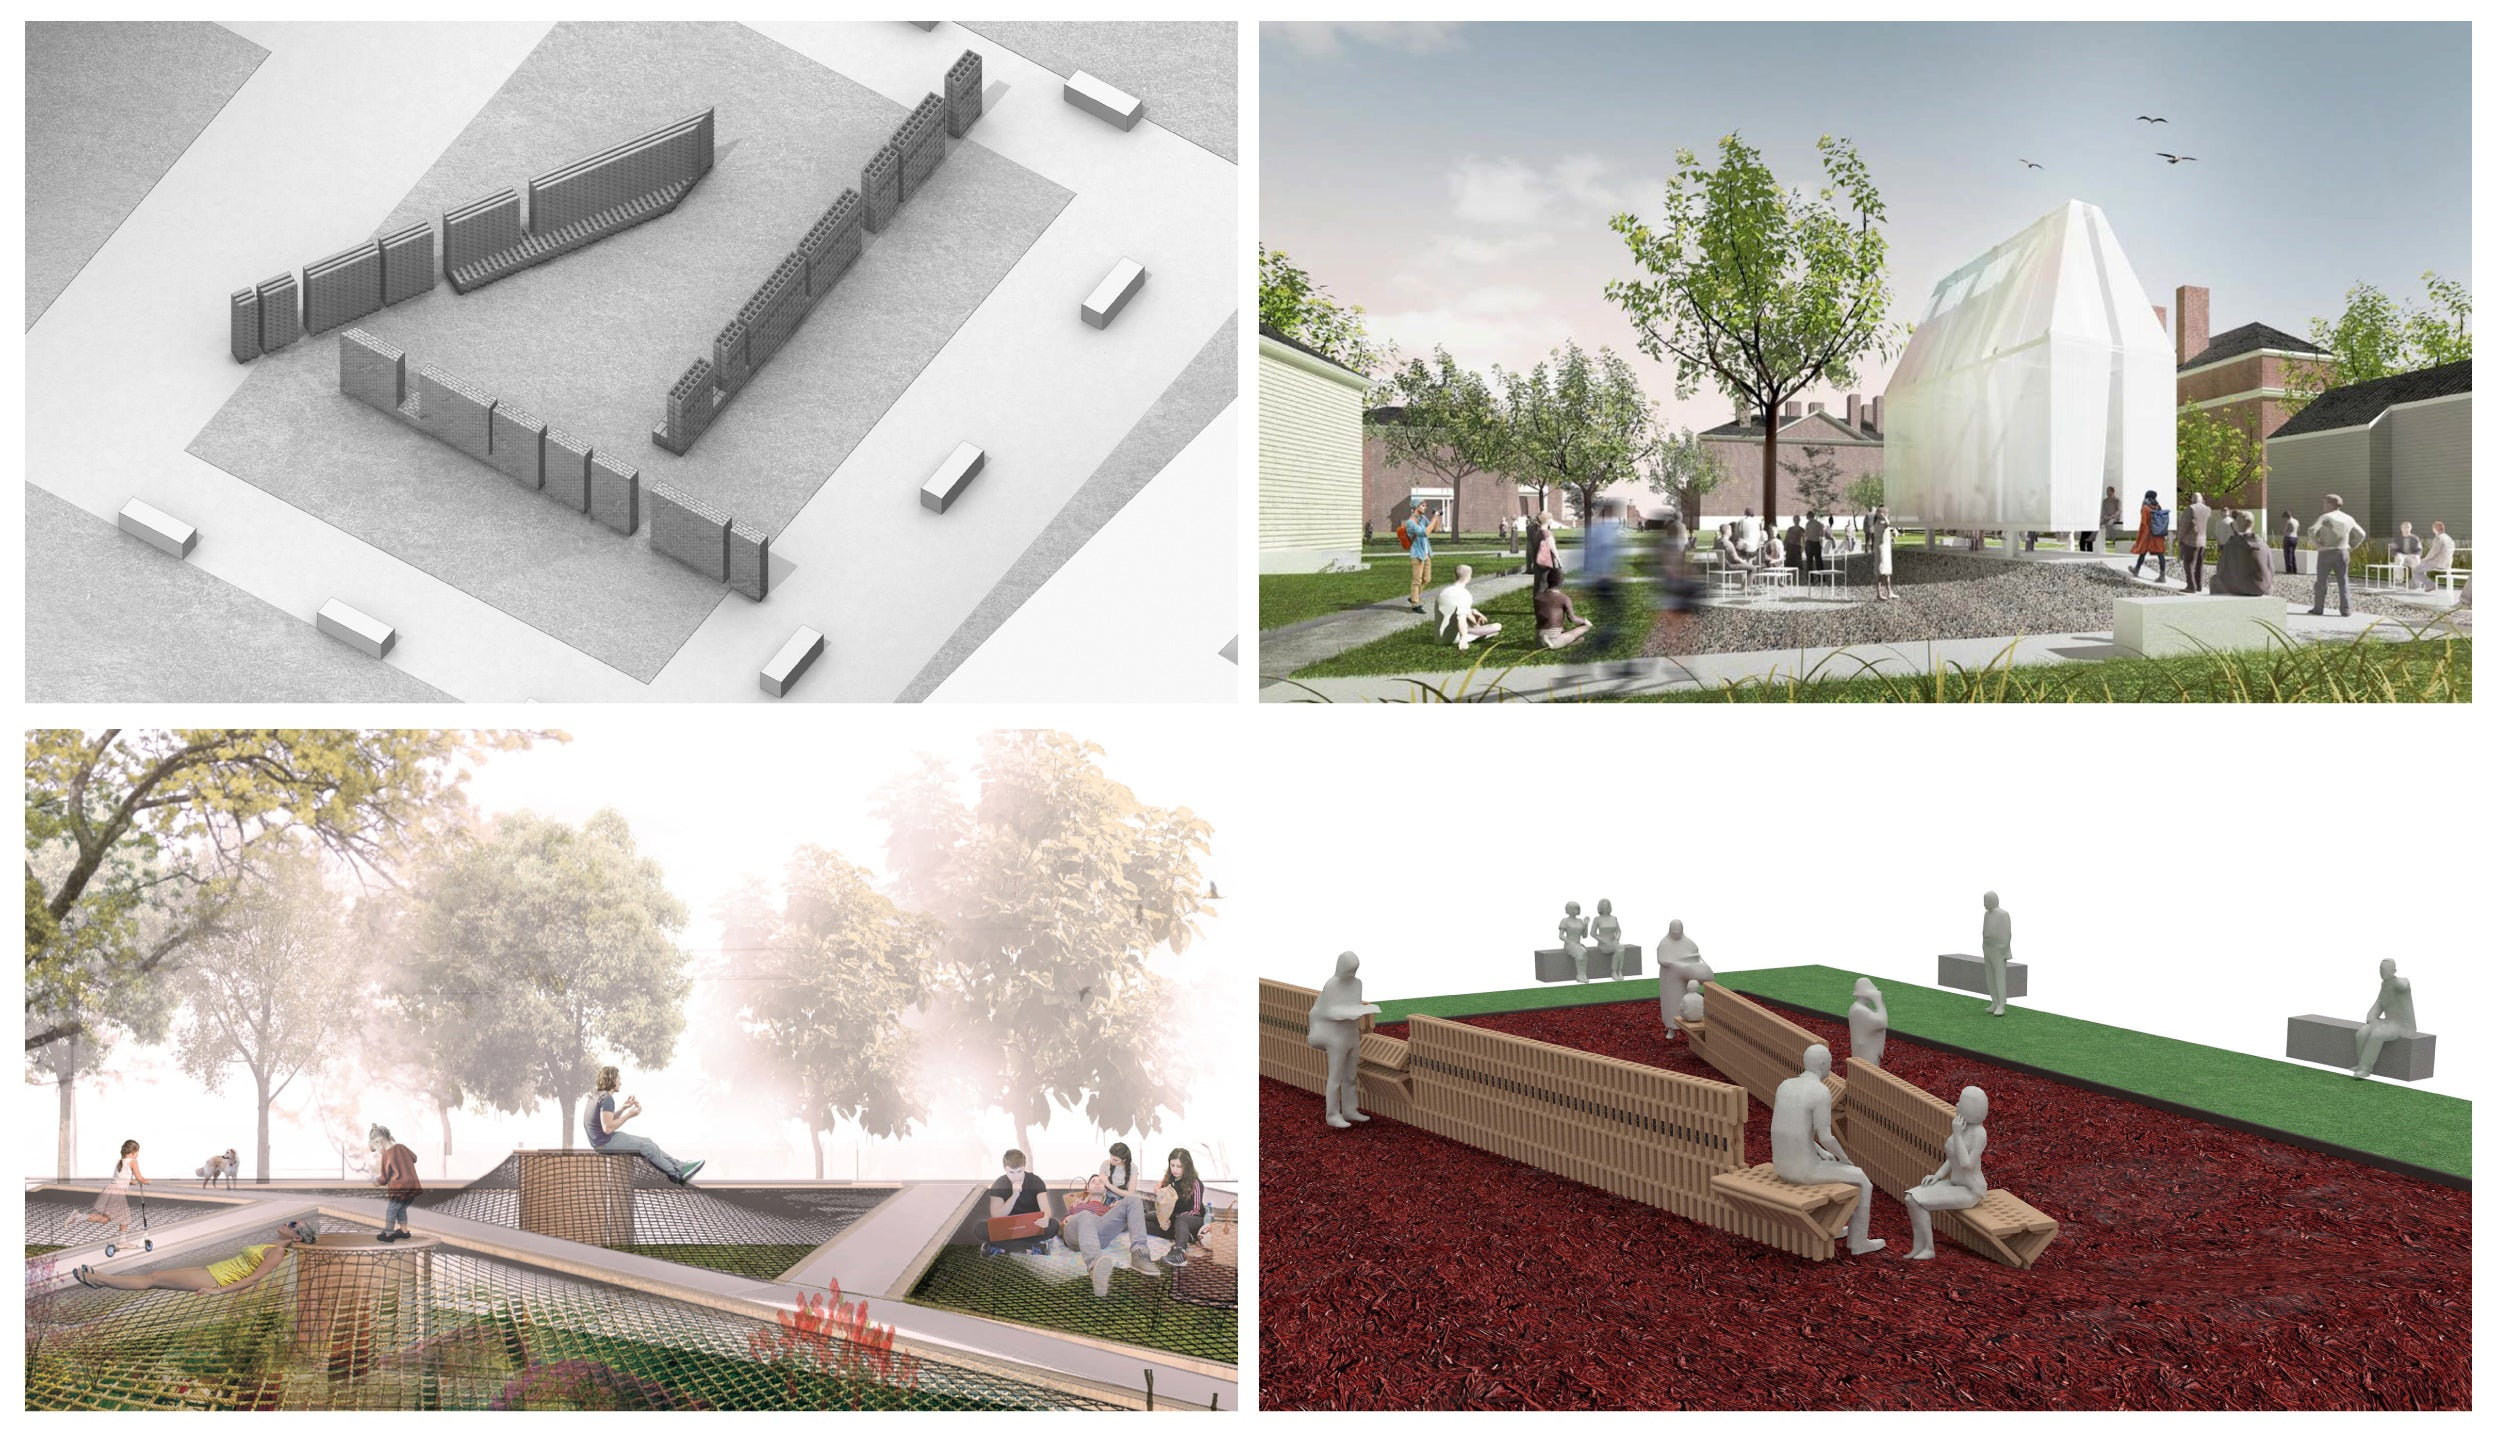 Renderings of the four finalists' designs in Radcliffe student public art contest.